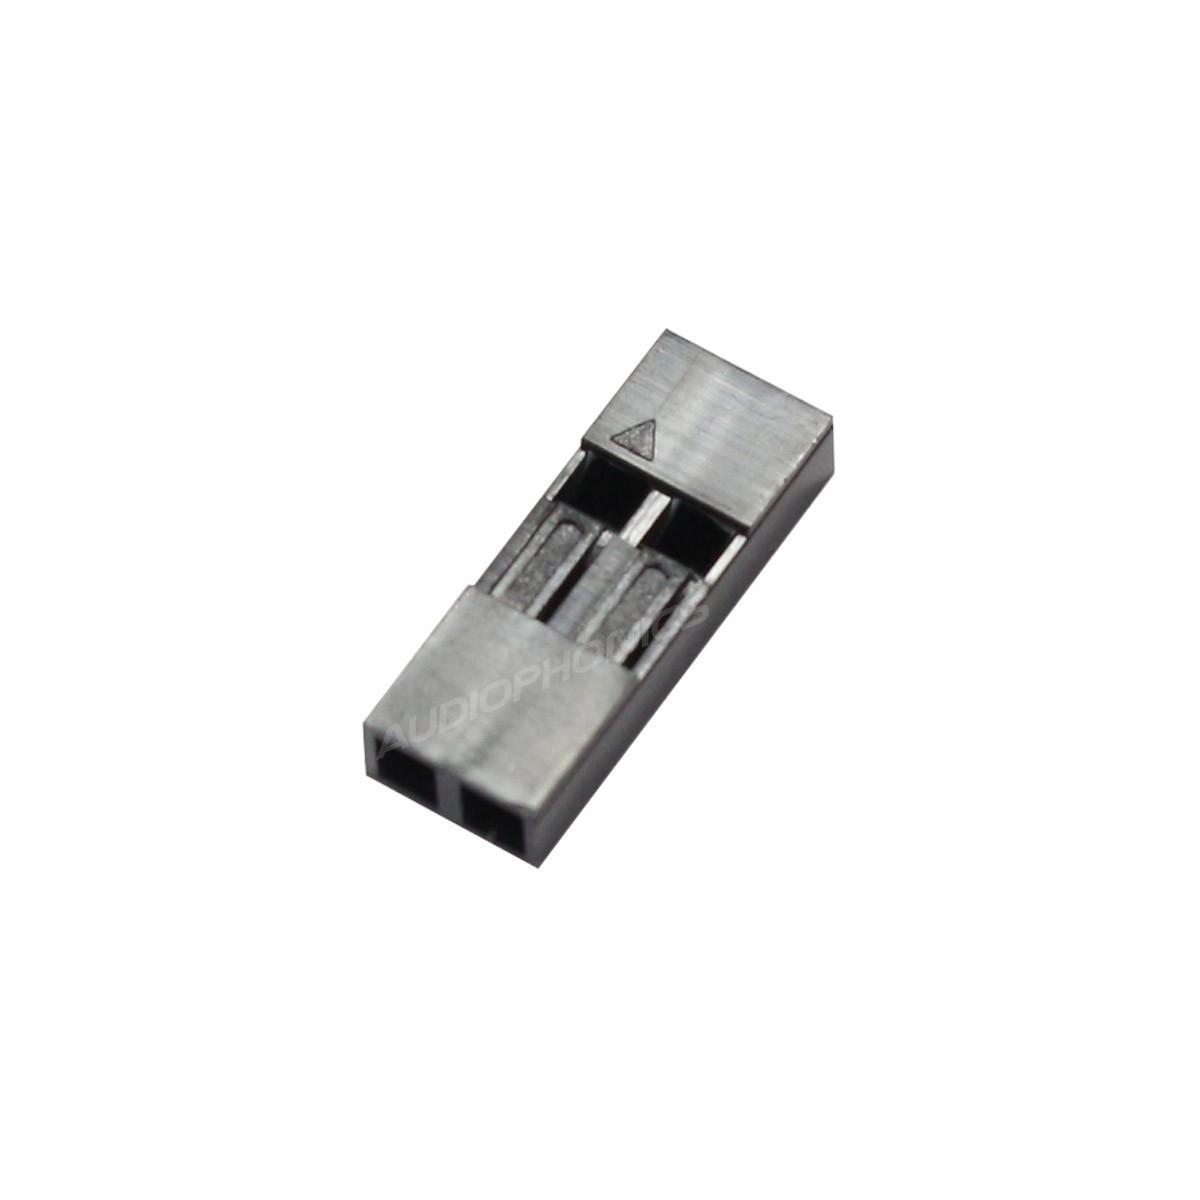 AMP Single-row housing 2-way 2.54mm (set x5)